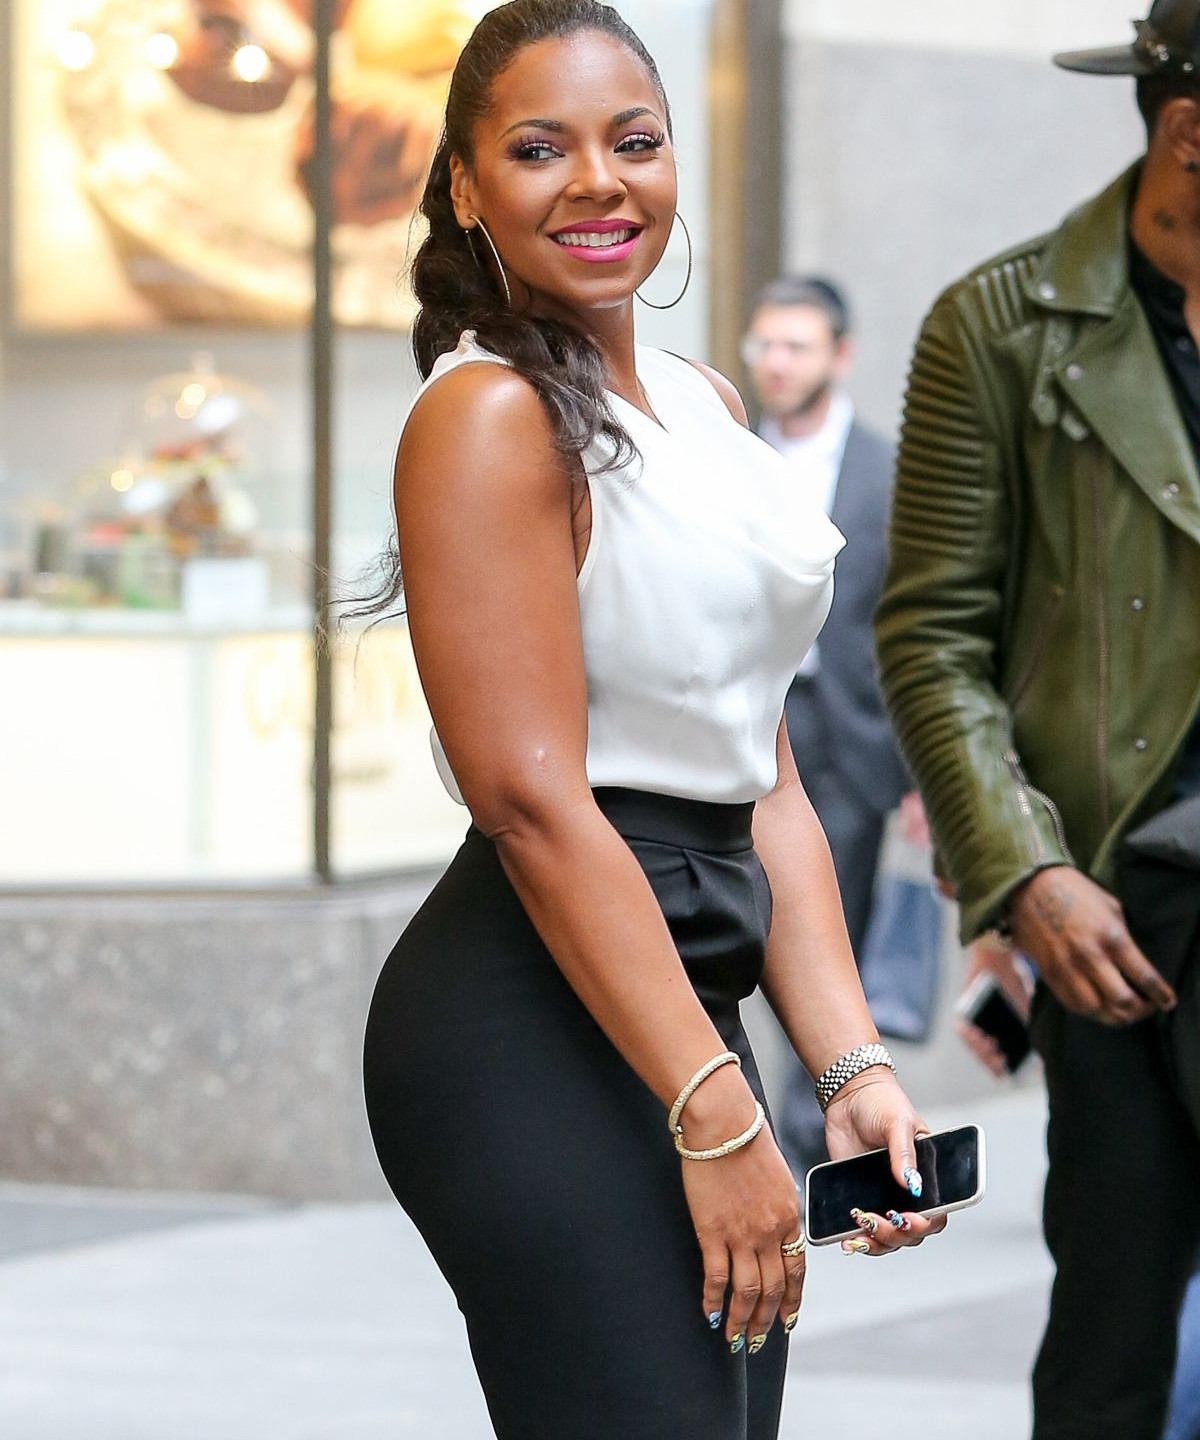 ashanti-out-and-about-in-new-york-04-17-2015_4